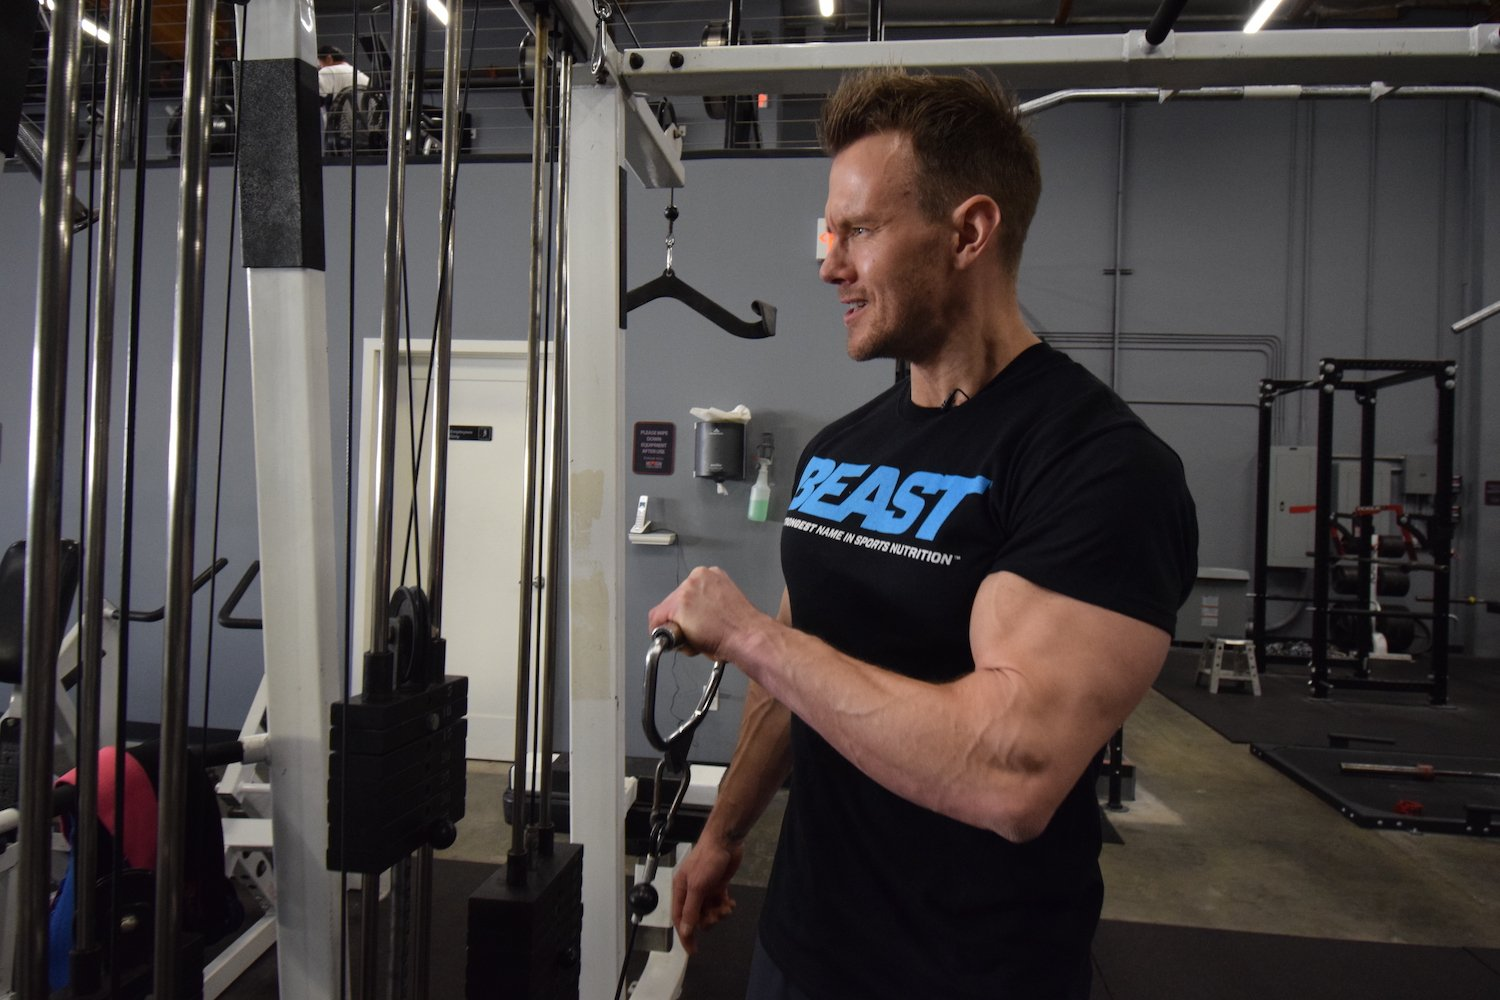 Get Forearms Like Popeye! - Beast Sports Nutrition